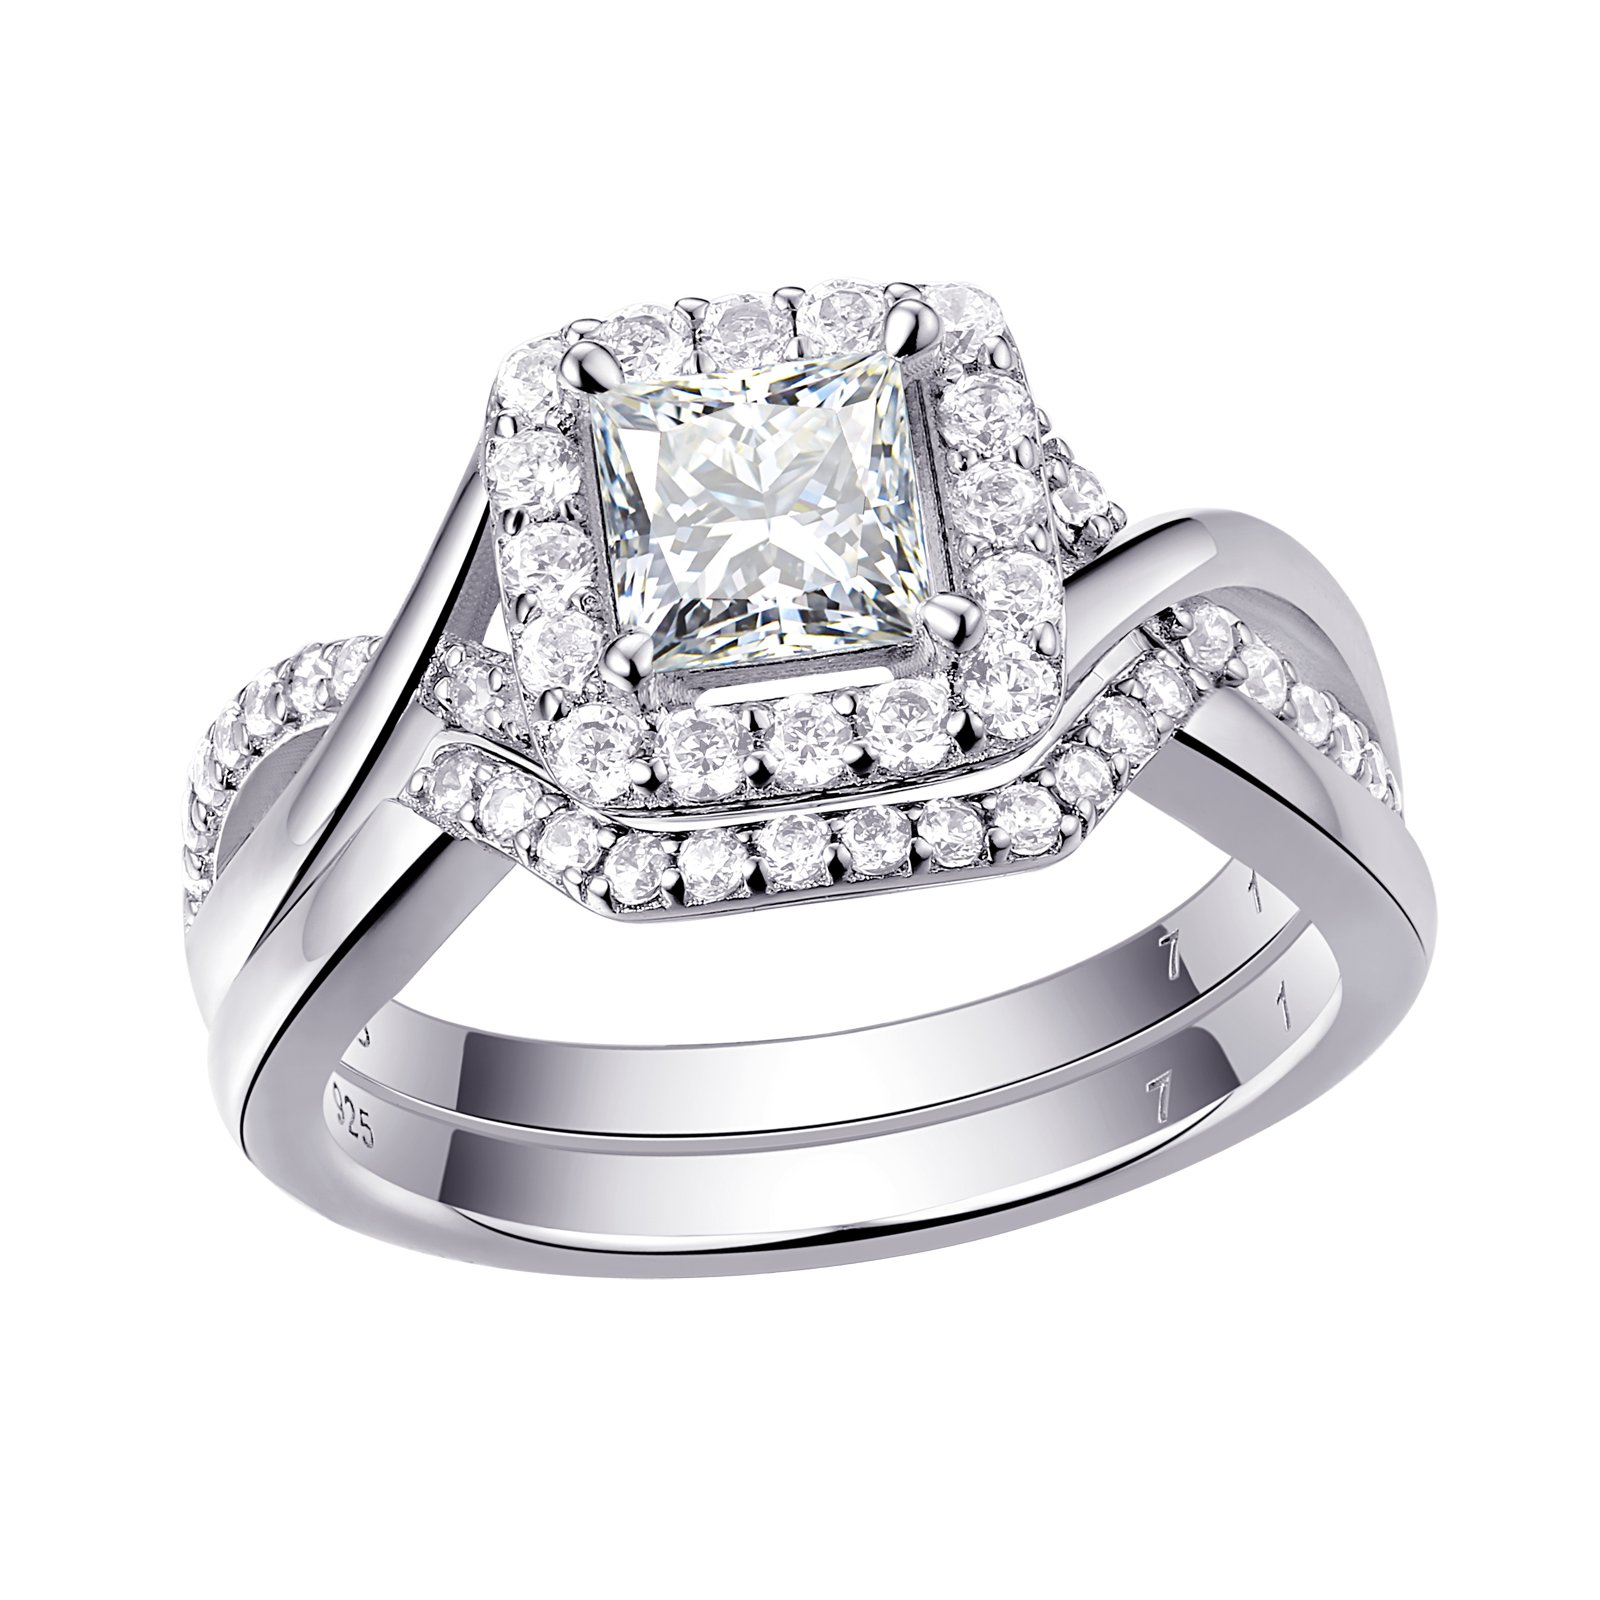 Newshe Engagement Wedding Ring For Women Bridal Set 925 Sterling Silver Princess White AAA Cz Size 9